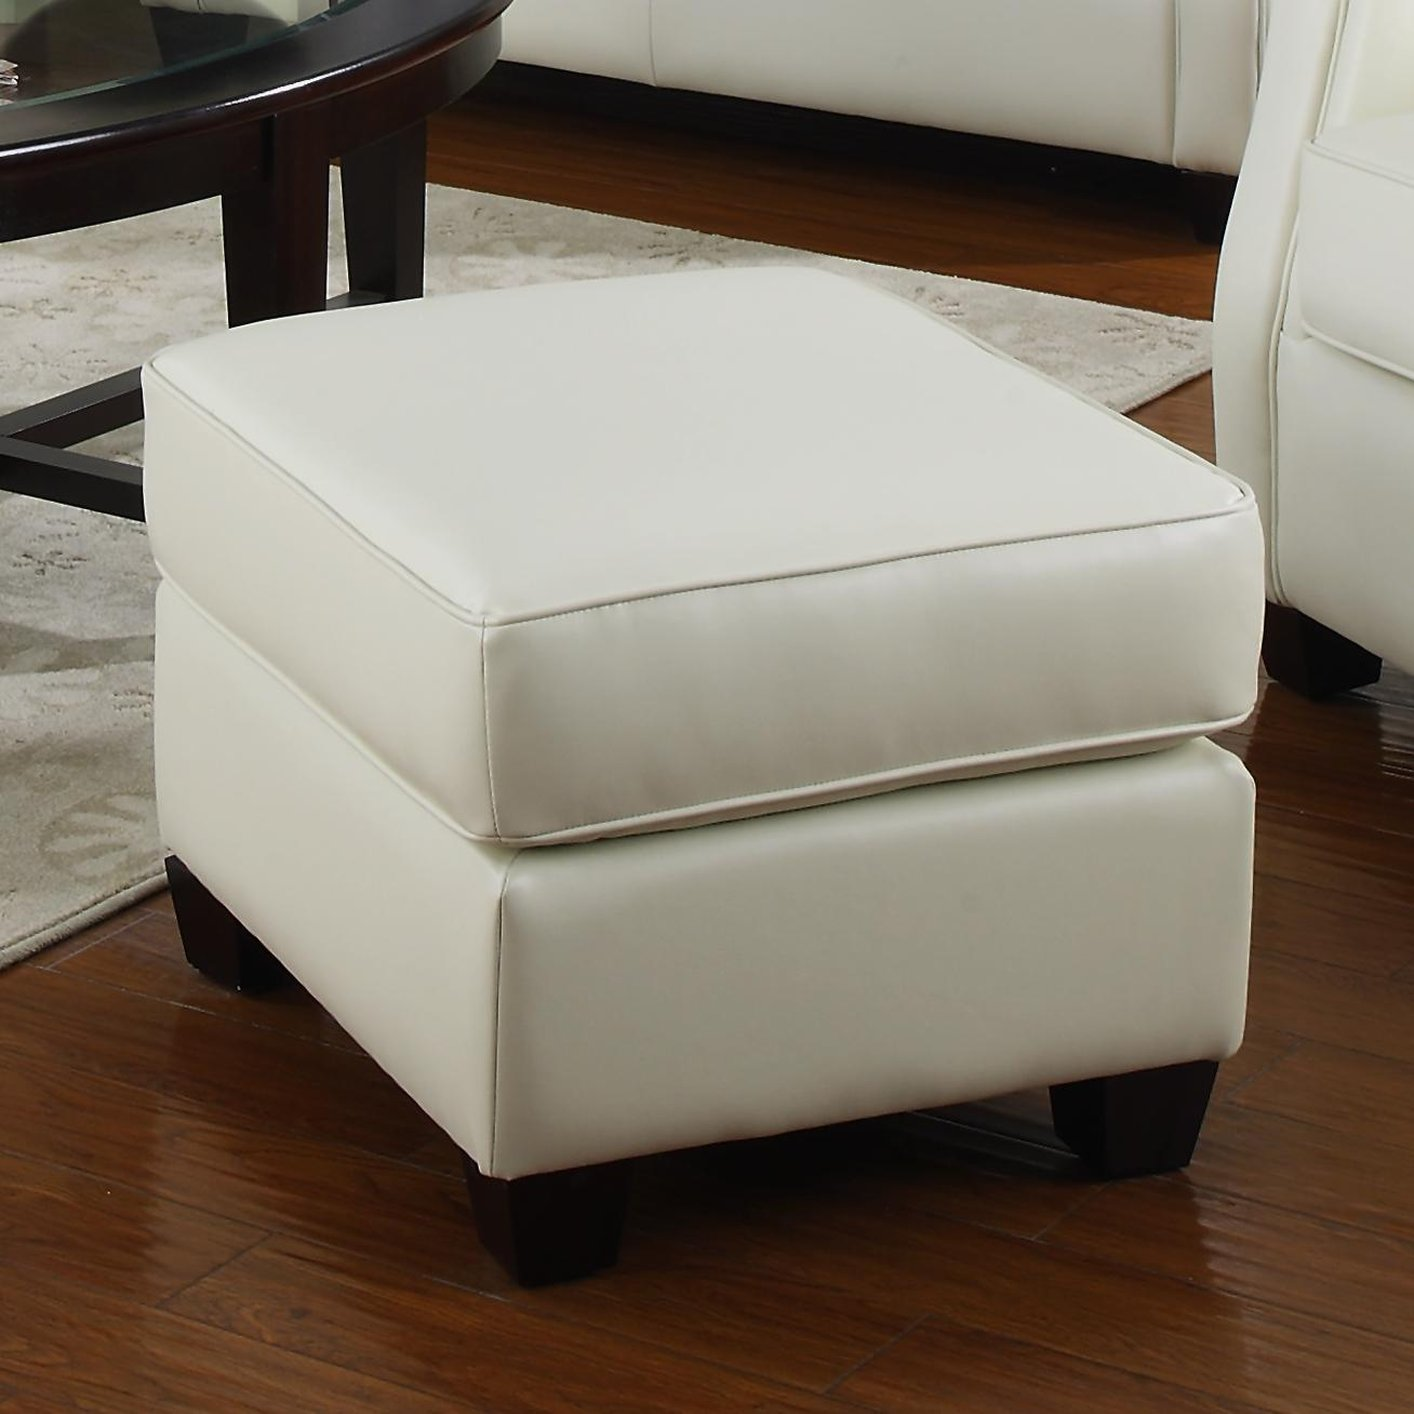 Kristyna beige leather ottoman steal a sofa furniture for Barcelona sectional sofa ottoman in beige